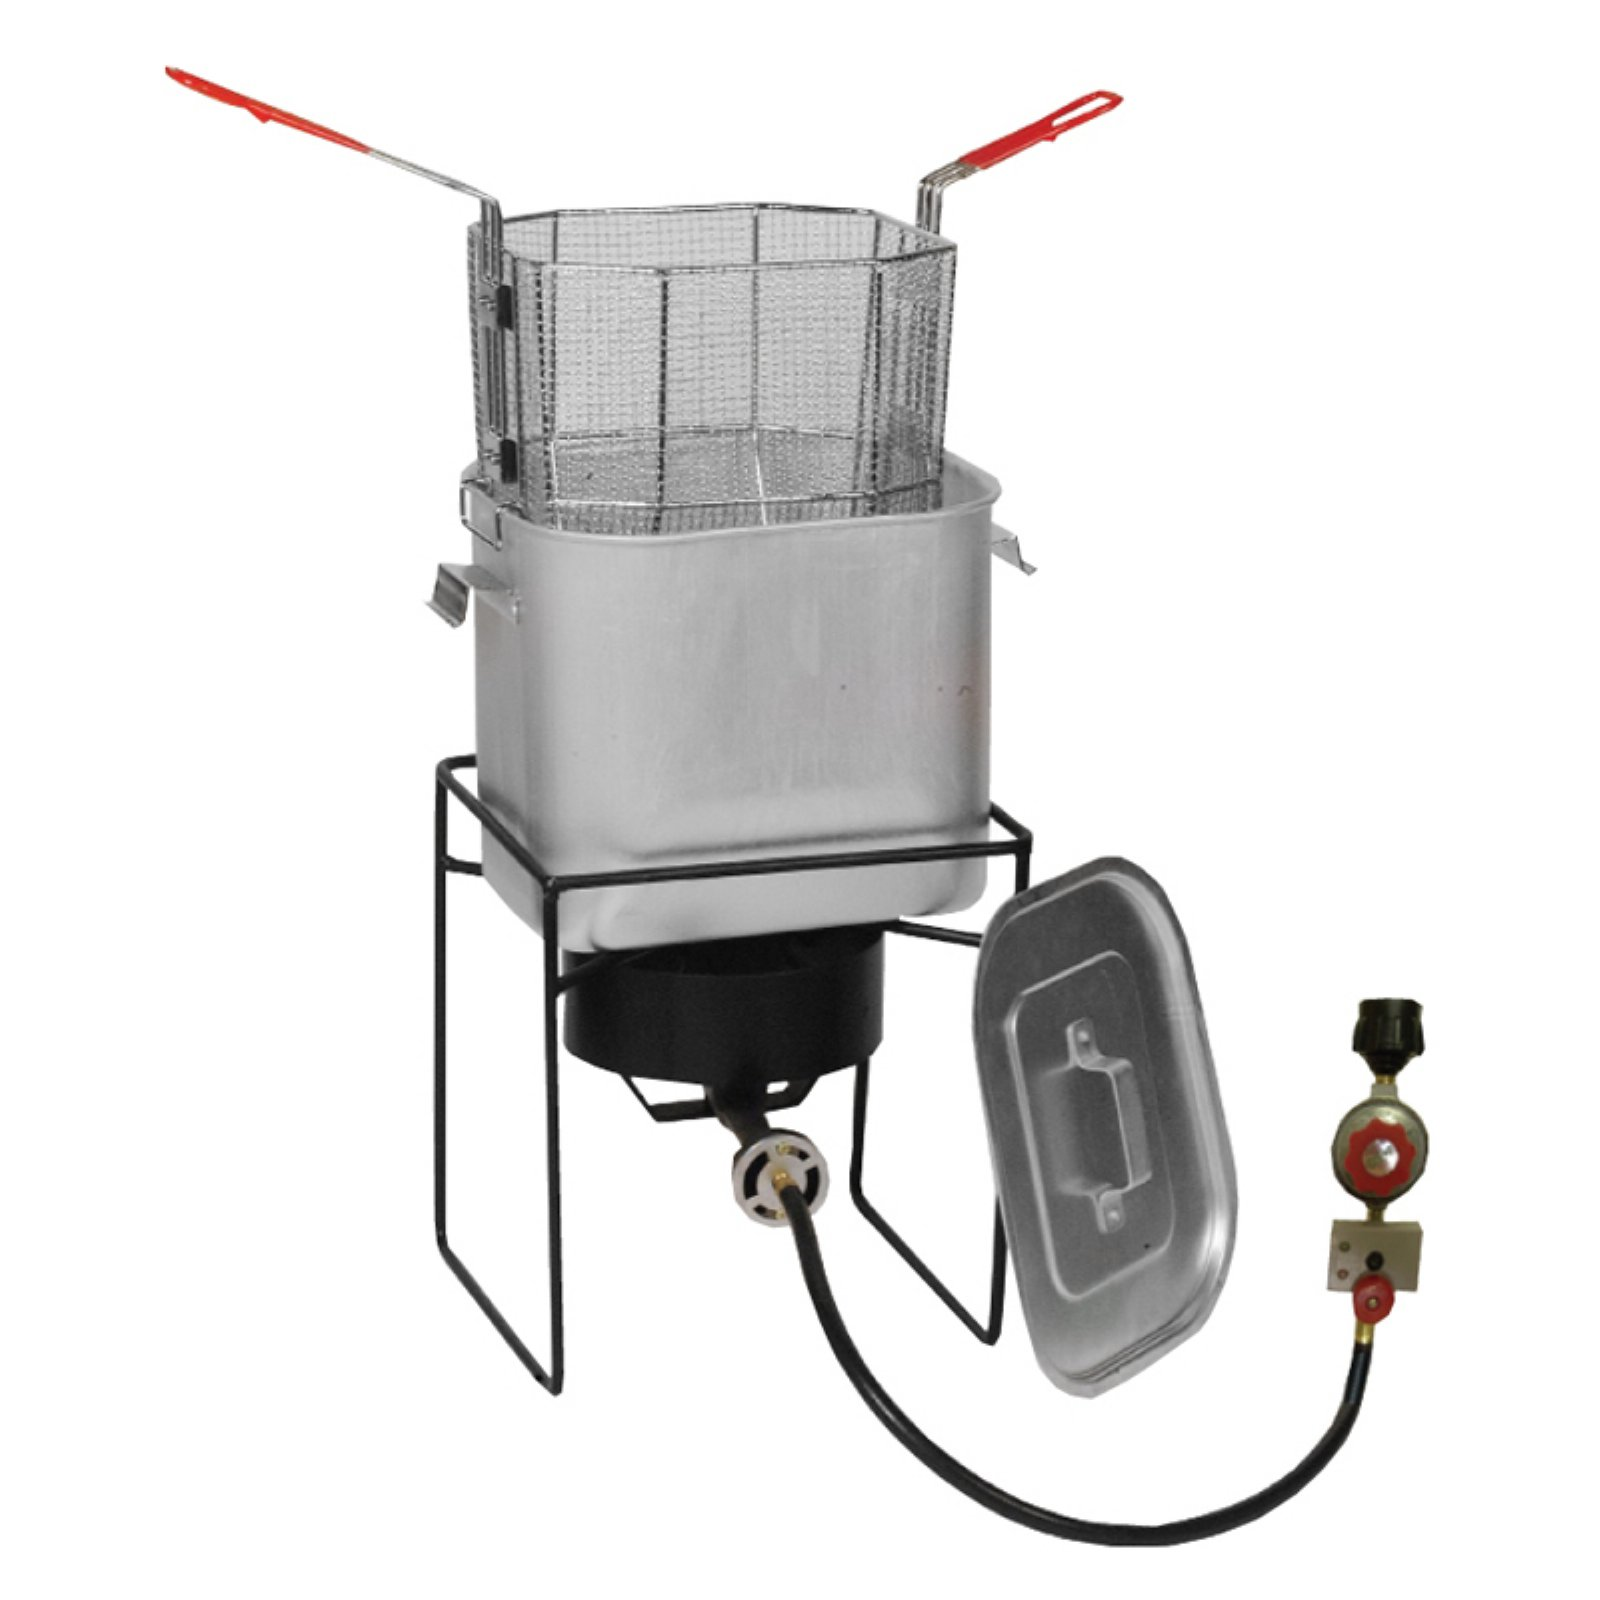 King Kooker Fry Bucket Turkey Fryer